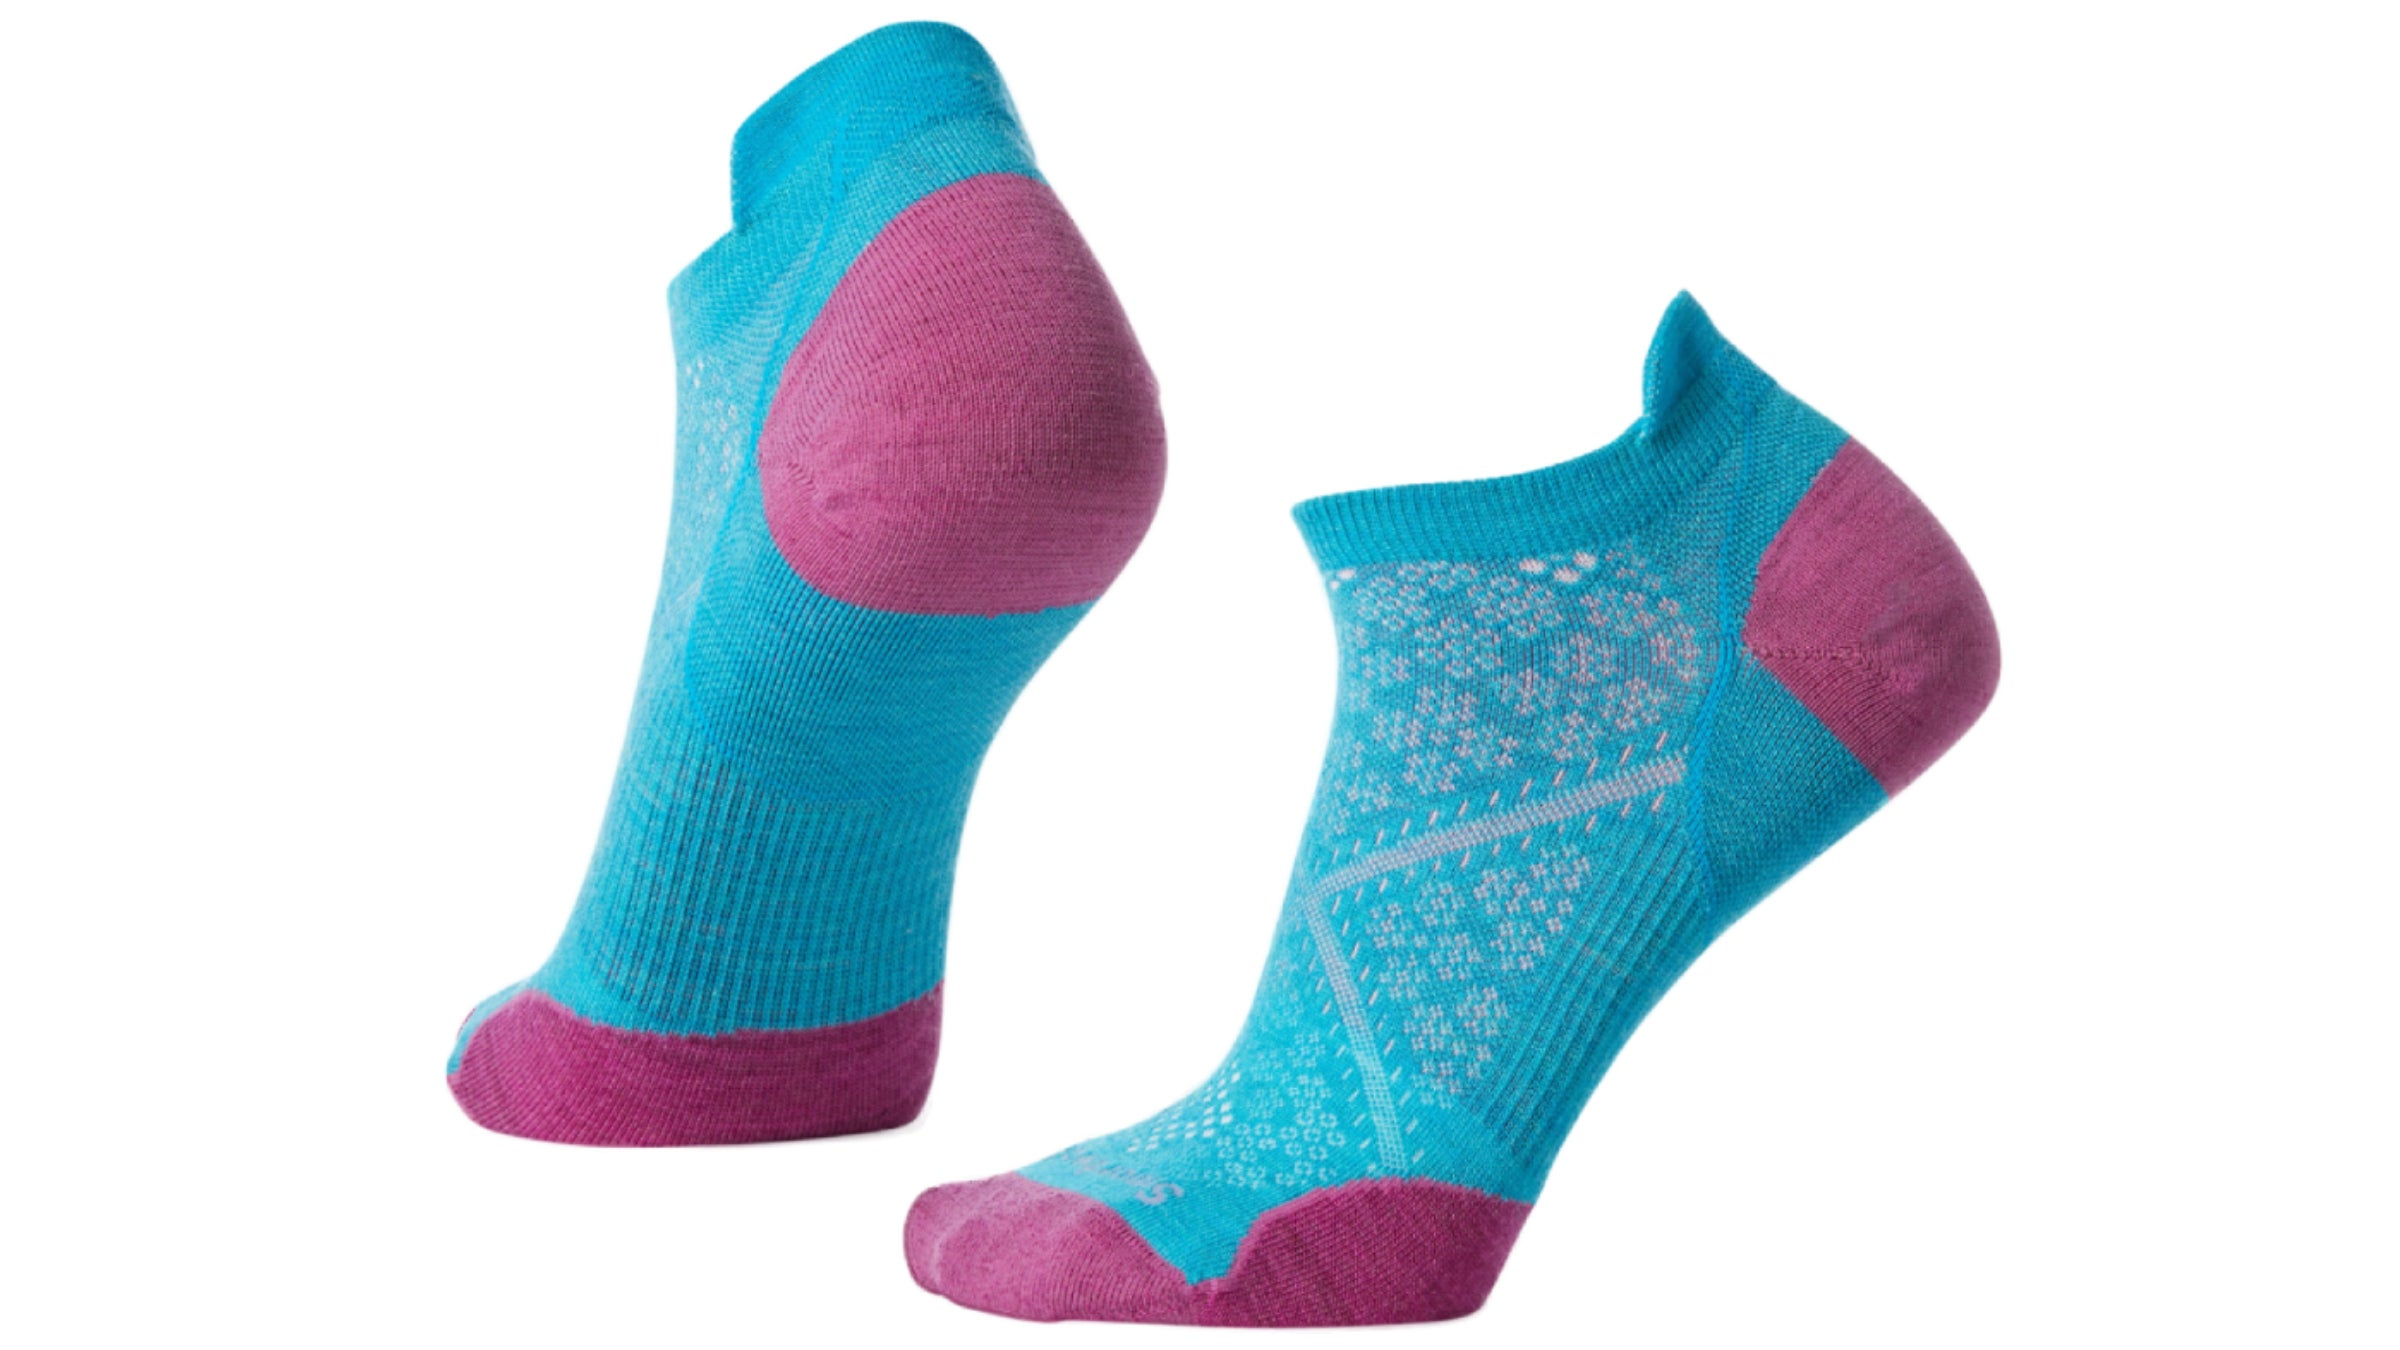 Teal and pink low-cut socks